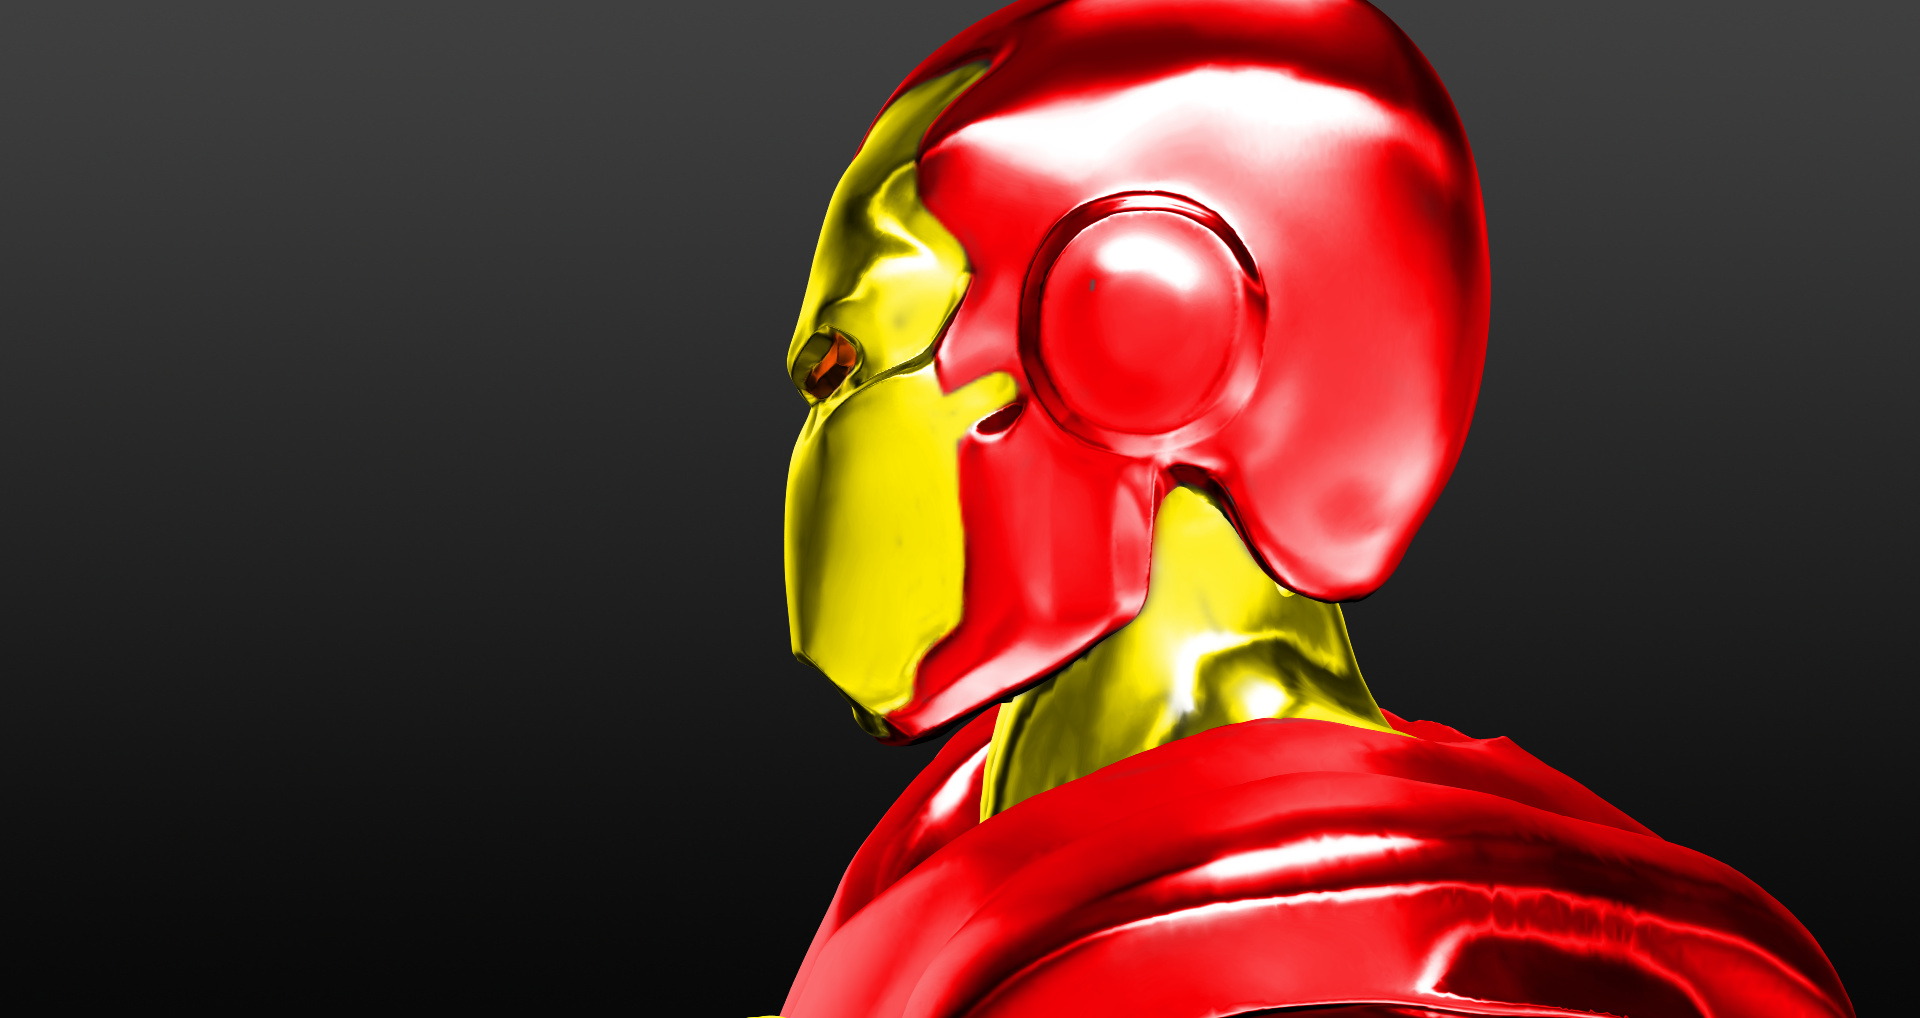 Ironman_Prova24_color3_head_side1